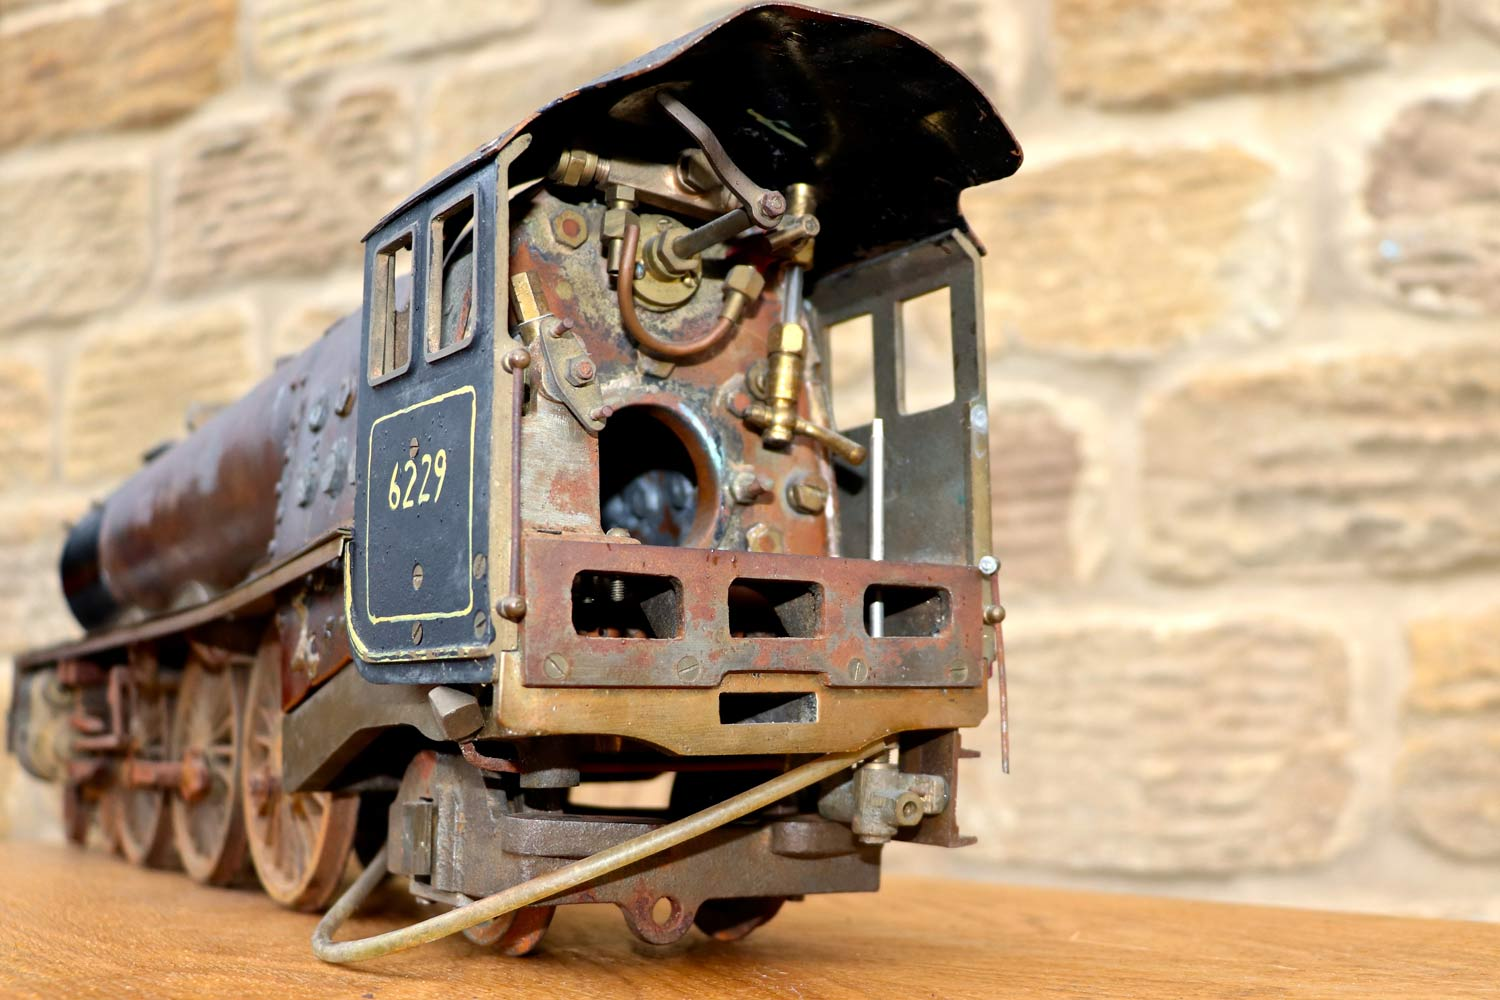 test 2-and-a-half-inch-gauge-LMS-Duchess-live-steam-locomotive-for-sale-11